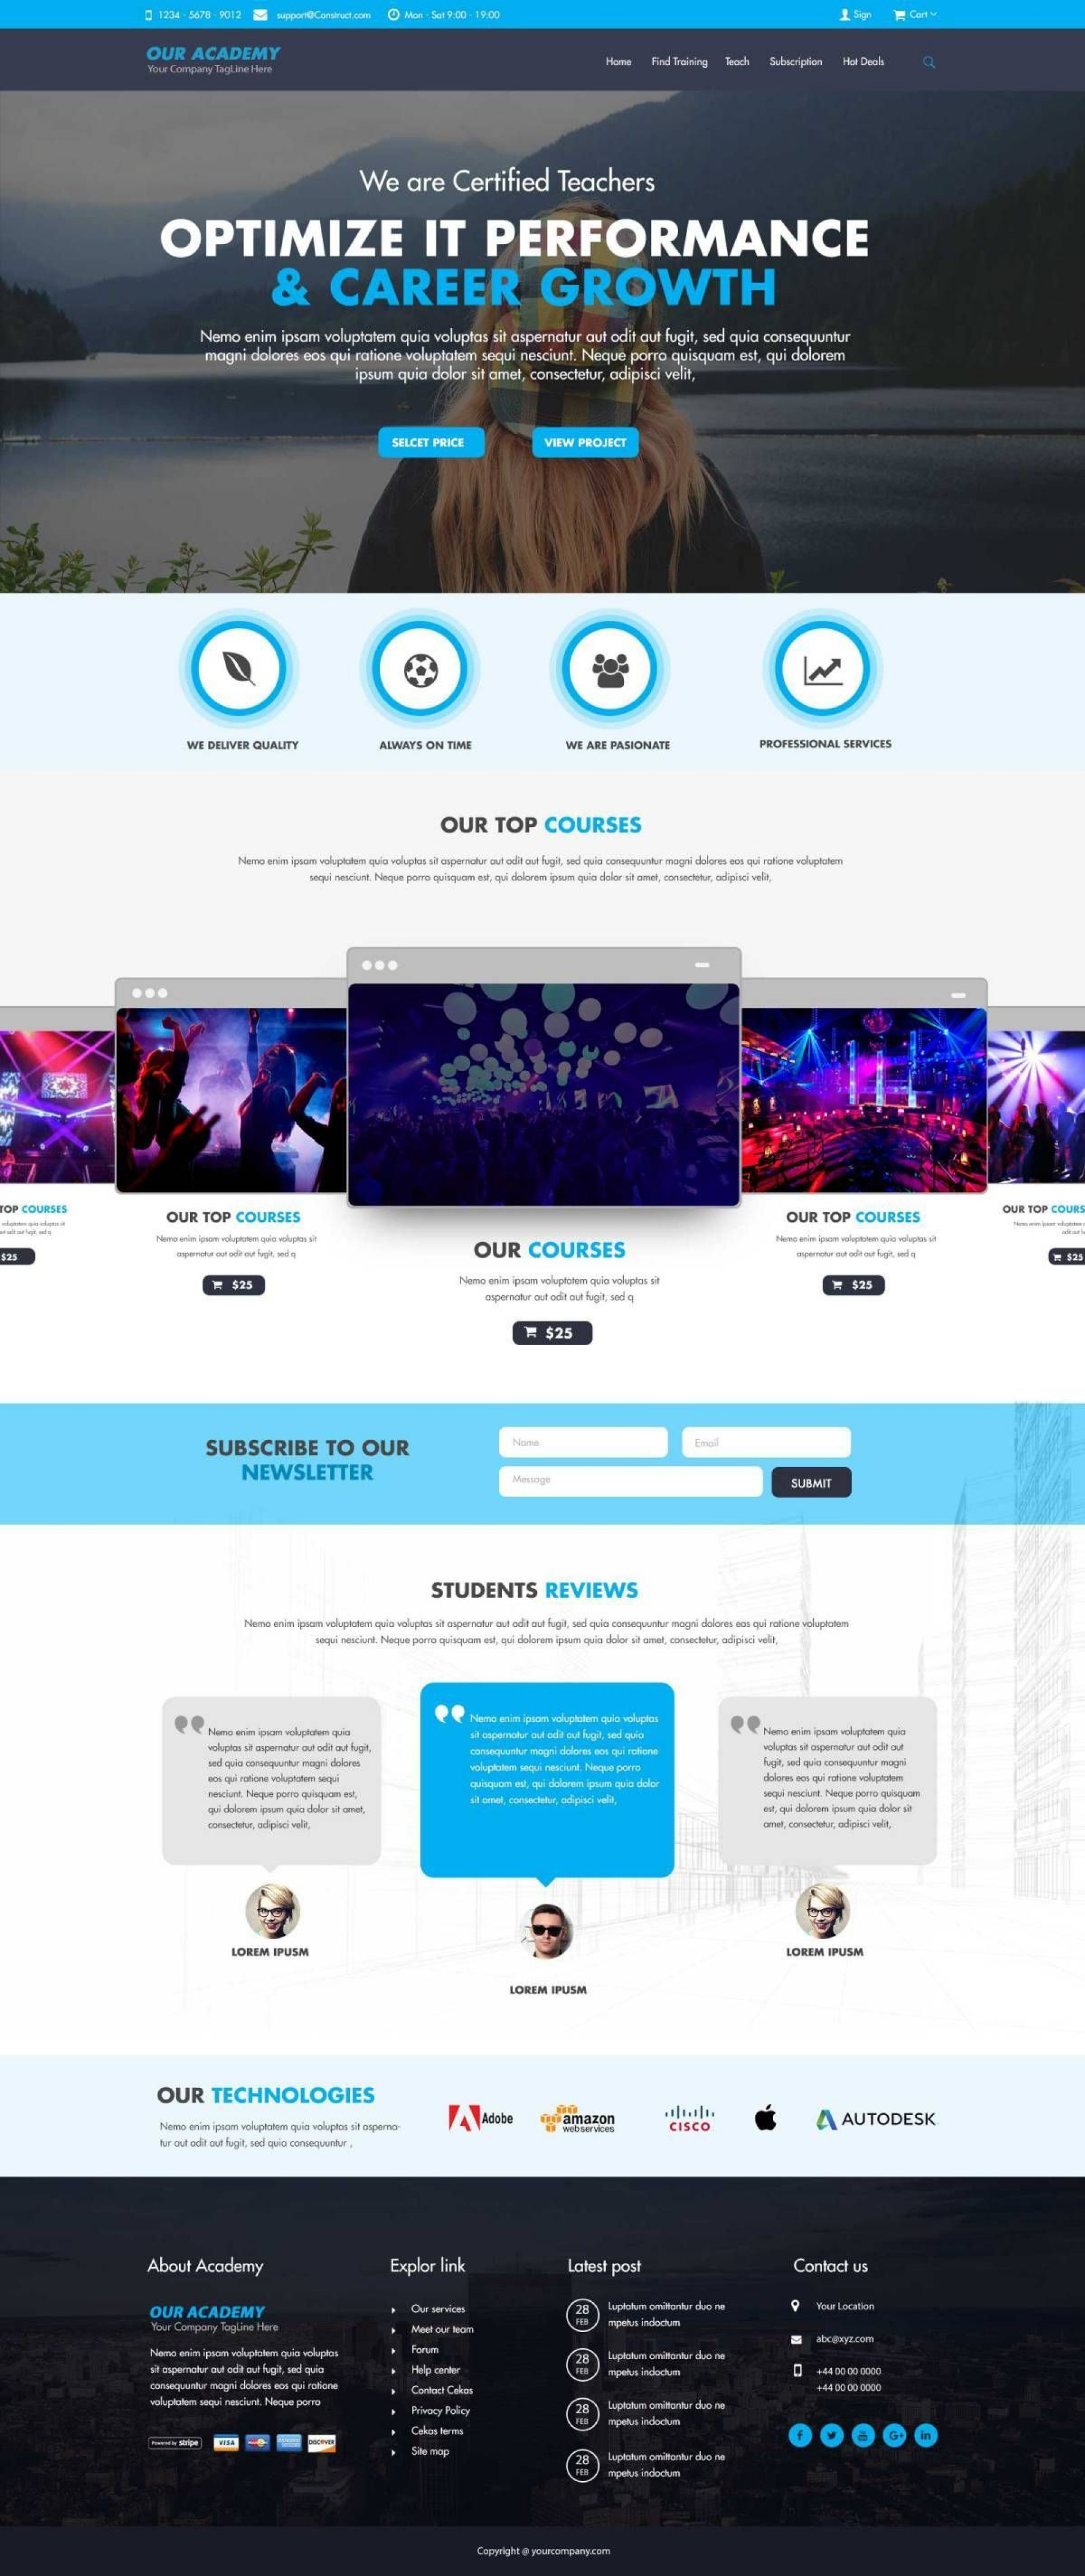 007 Amazing Website Template Free Download Picture  Online Shopping Colorlib New Wordpres Html5 For Busines1920